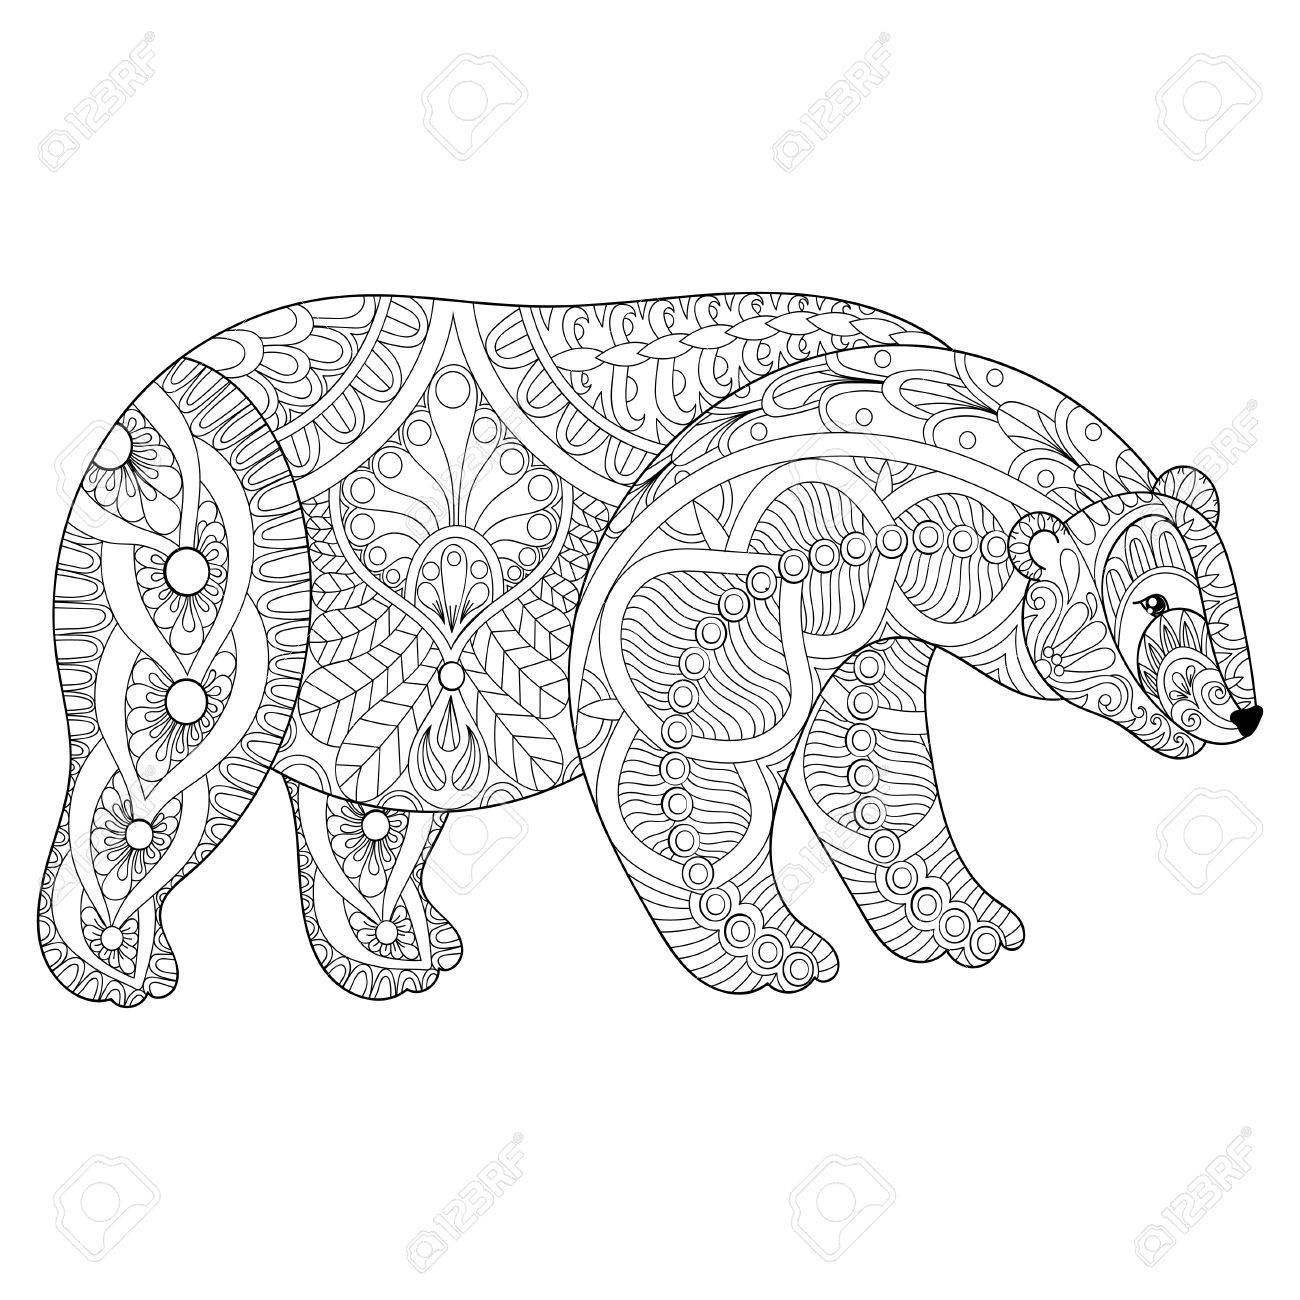 Vector Zentangle Polar Bear Head For Adult Anti Stress Coloring Royalty Free Cliparts Vectors And Stock Illustration Image 69992659